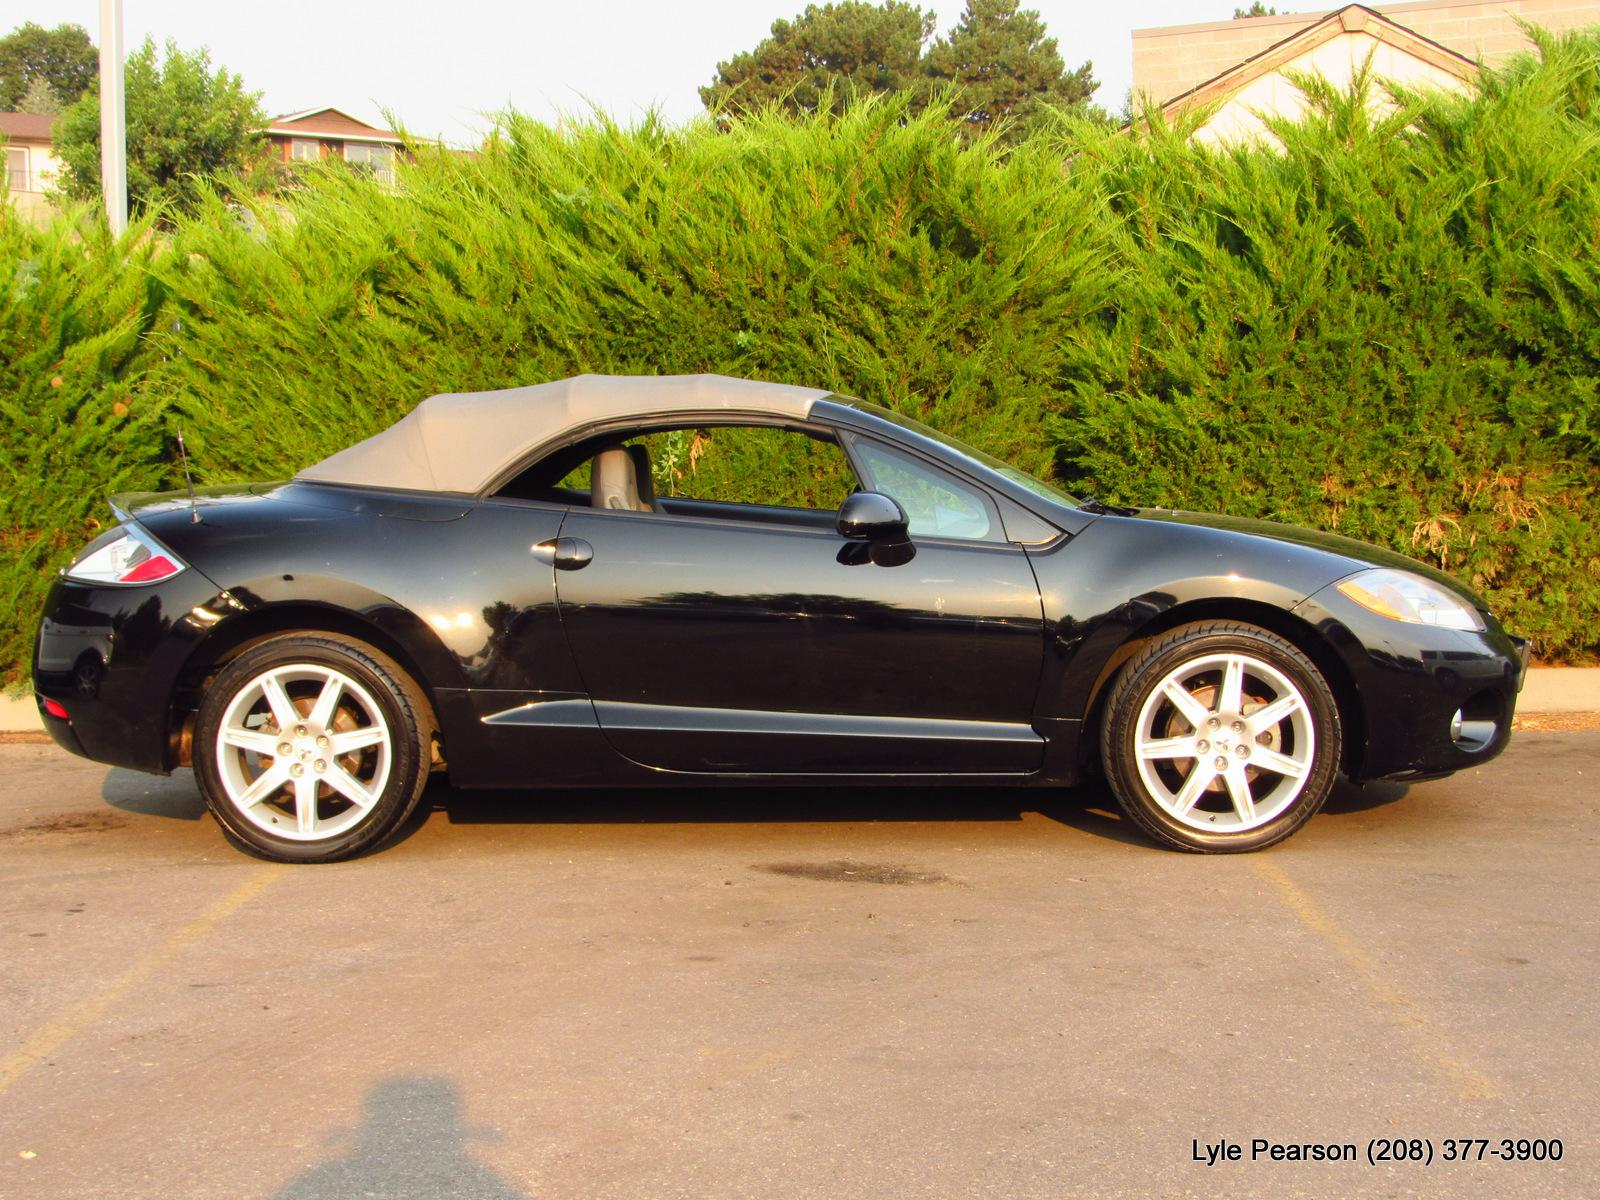 Pre-Owned 2007 Mitsubishi Eclipse 2dr Spyder Manual GT